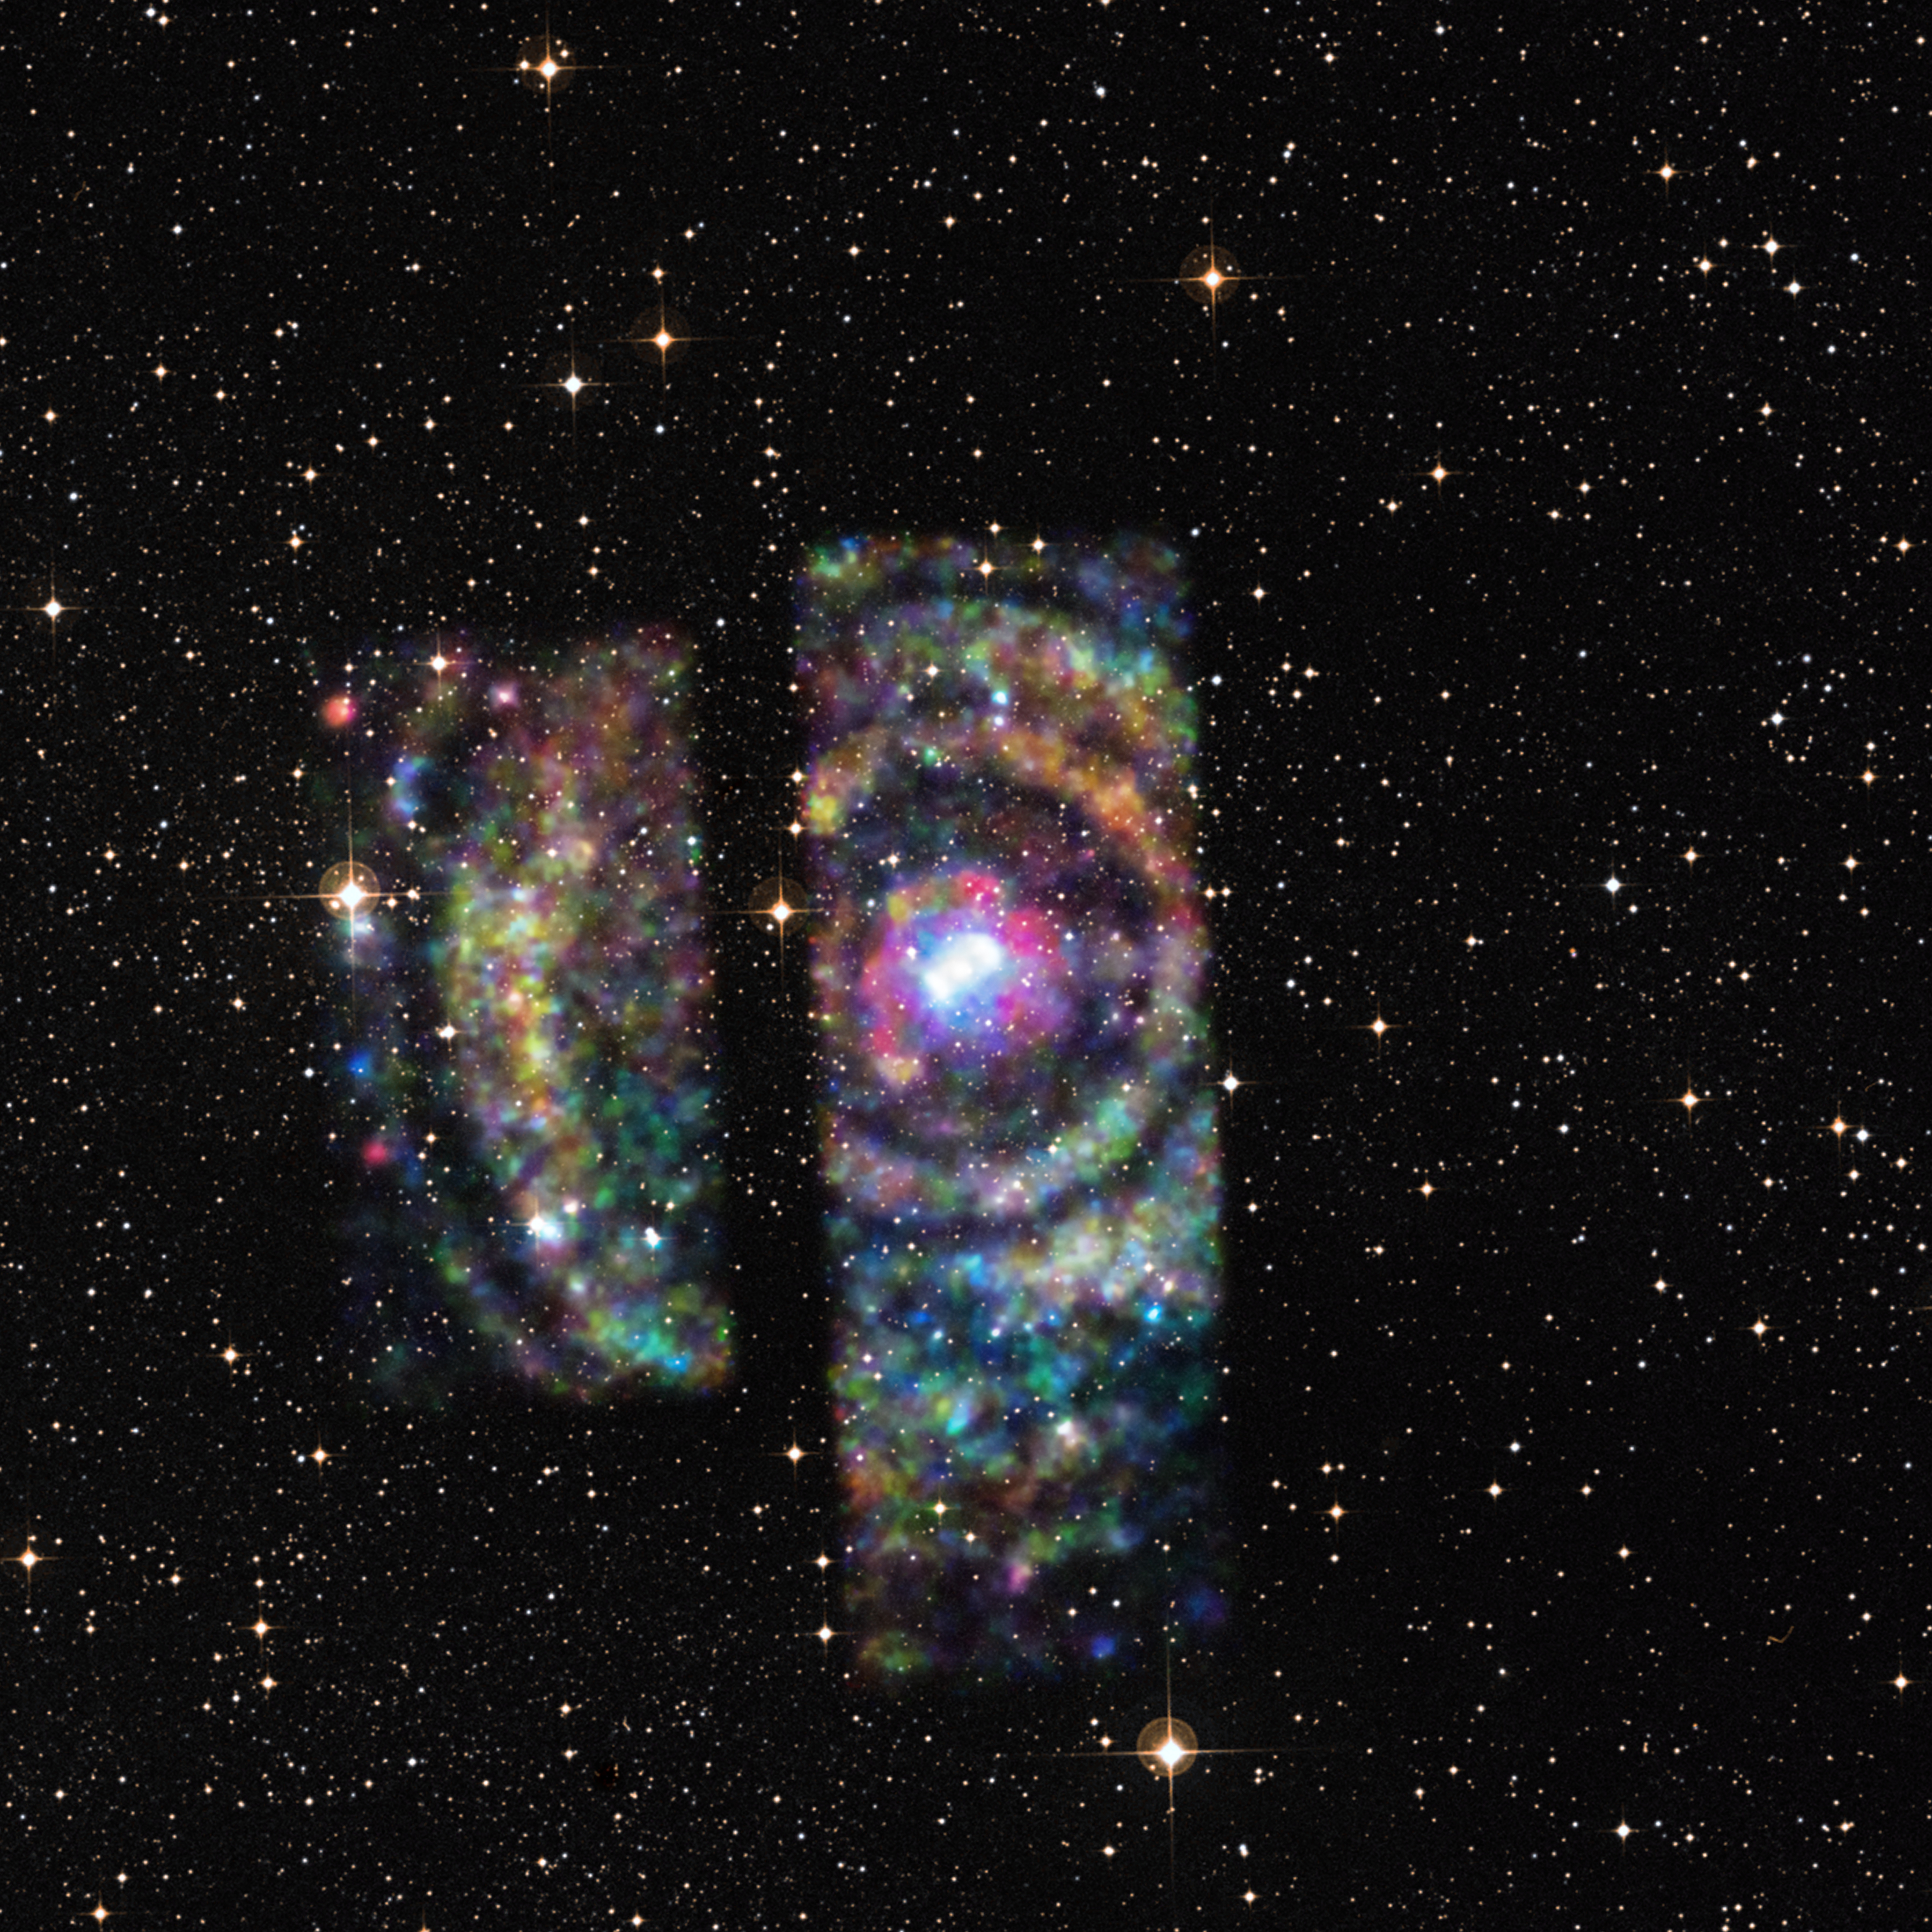 X ray Echoes from Circinus X 1